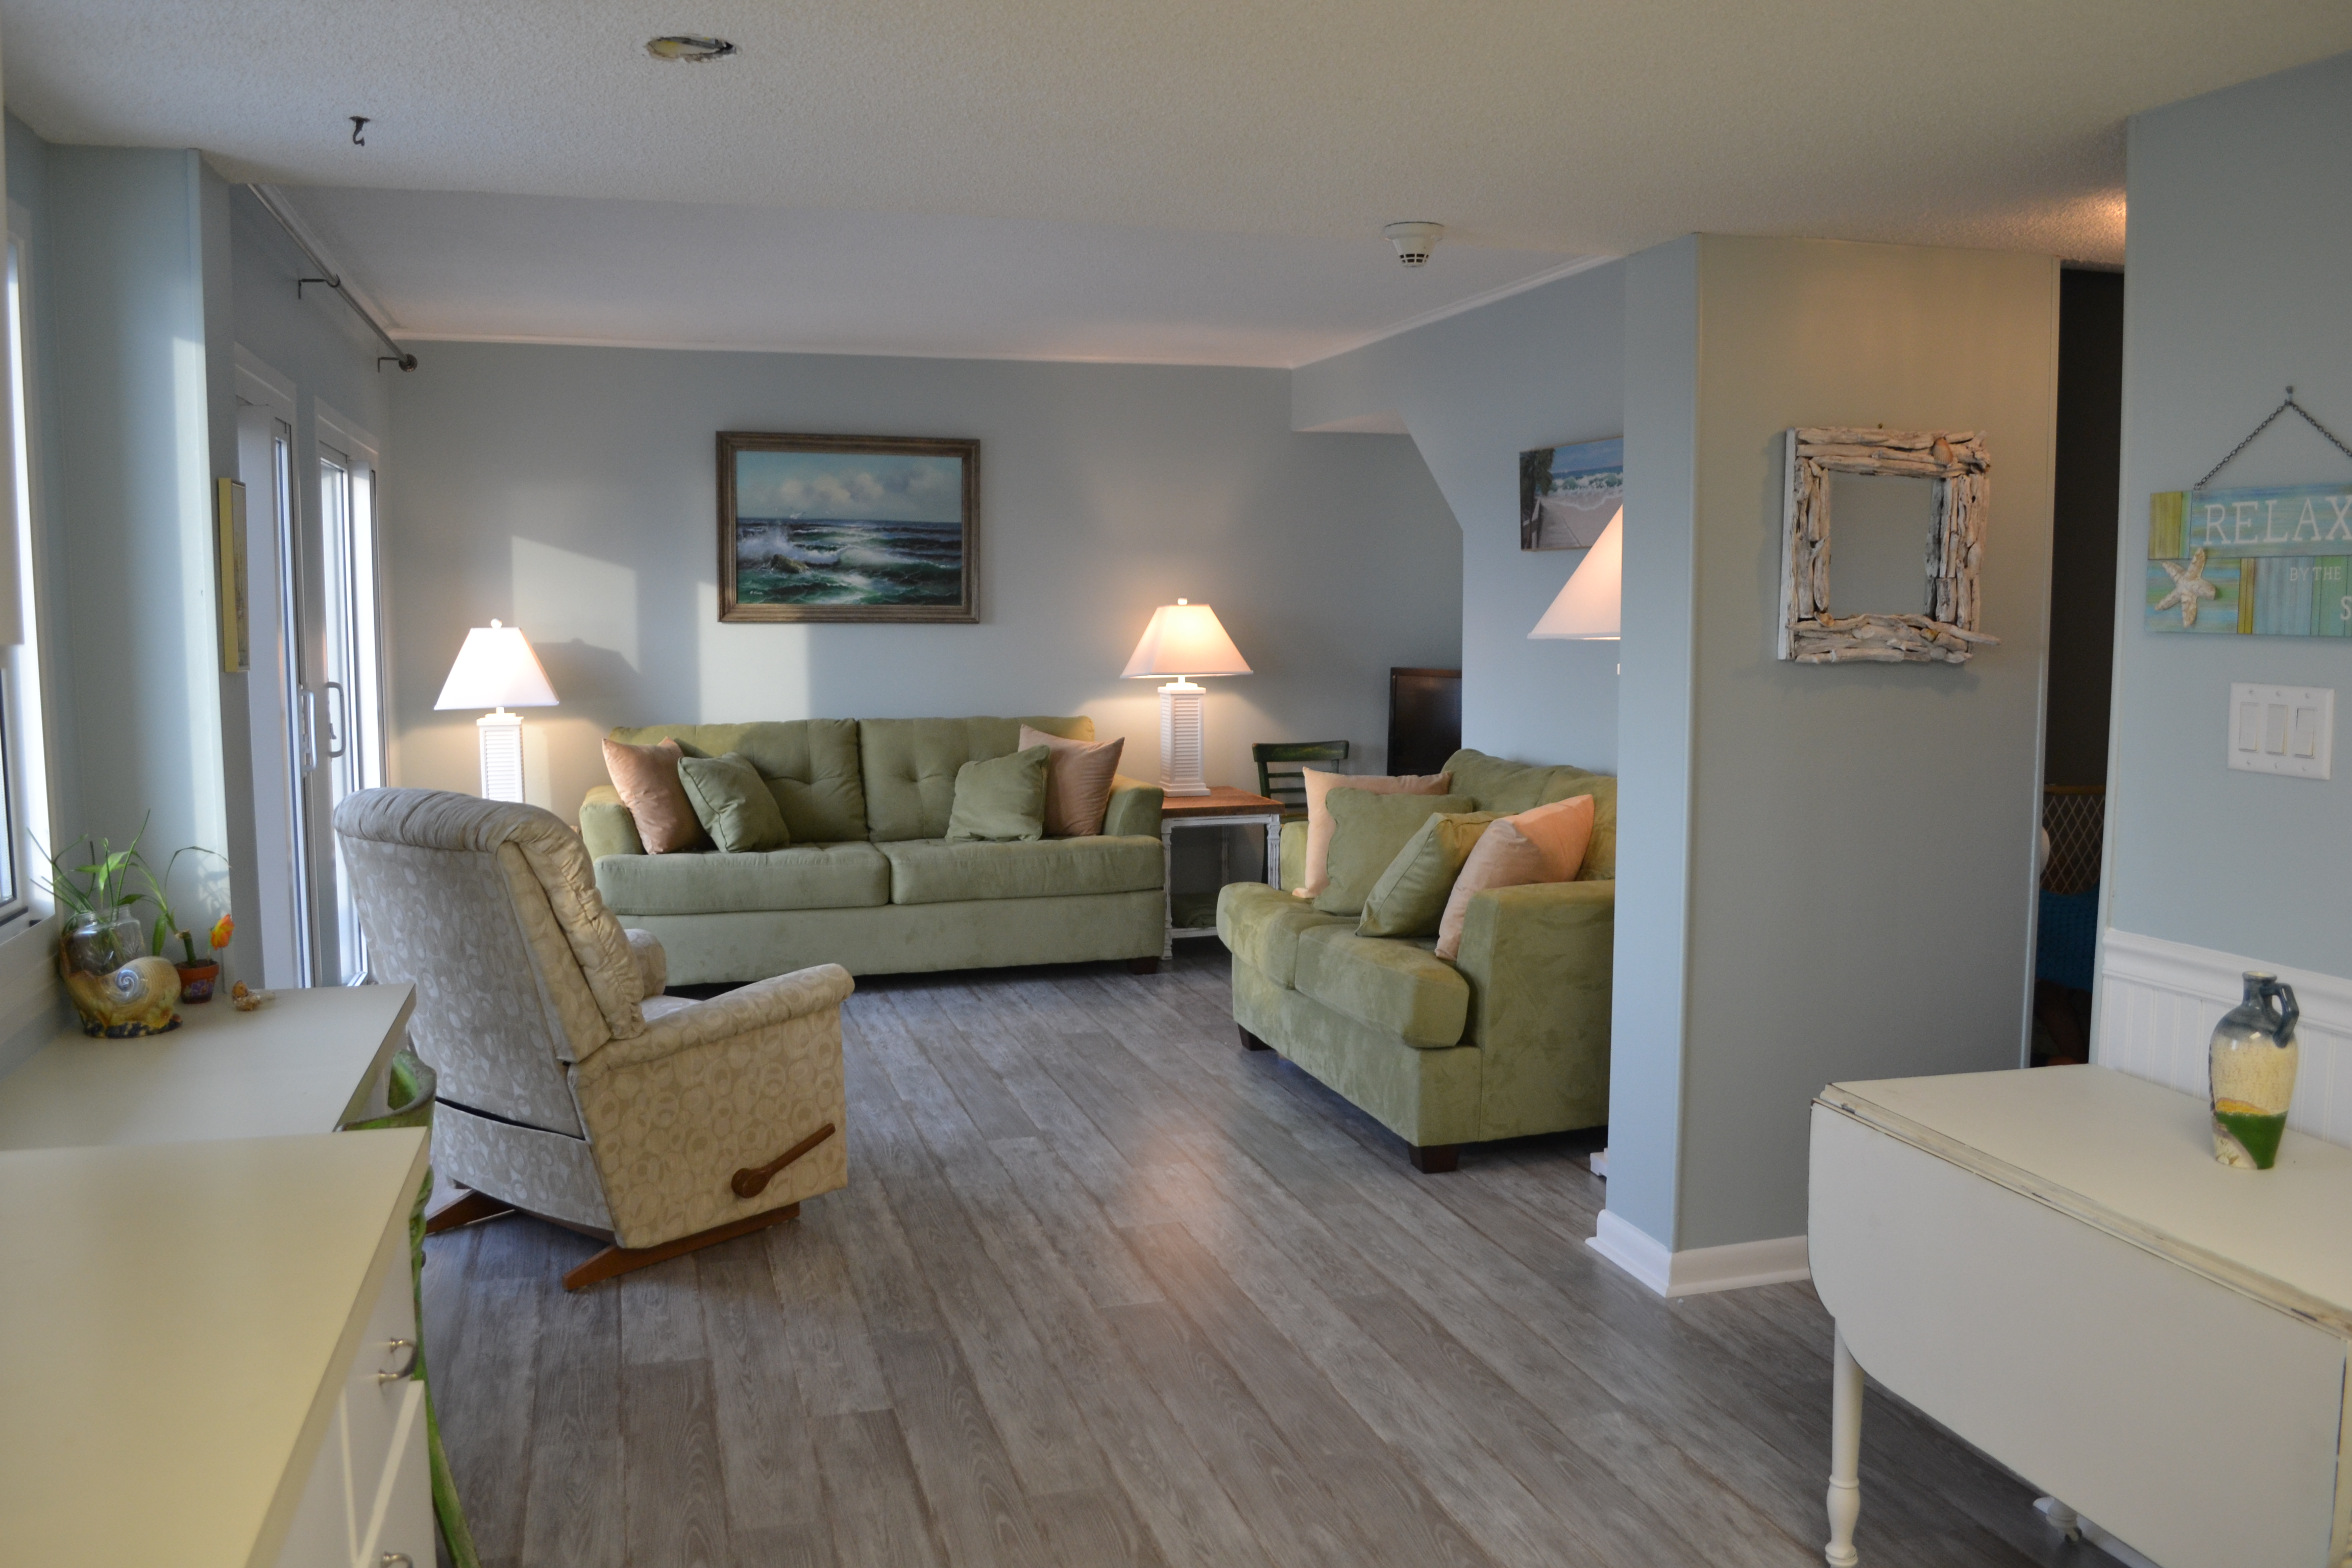 how to decorate a small living room with sofa and loveseat modern table legs don't wanna leave at jeanne stan's beach (at pinnacle ...